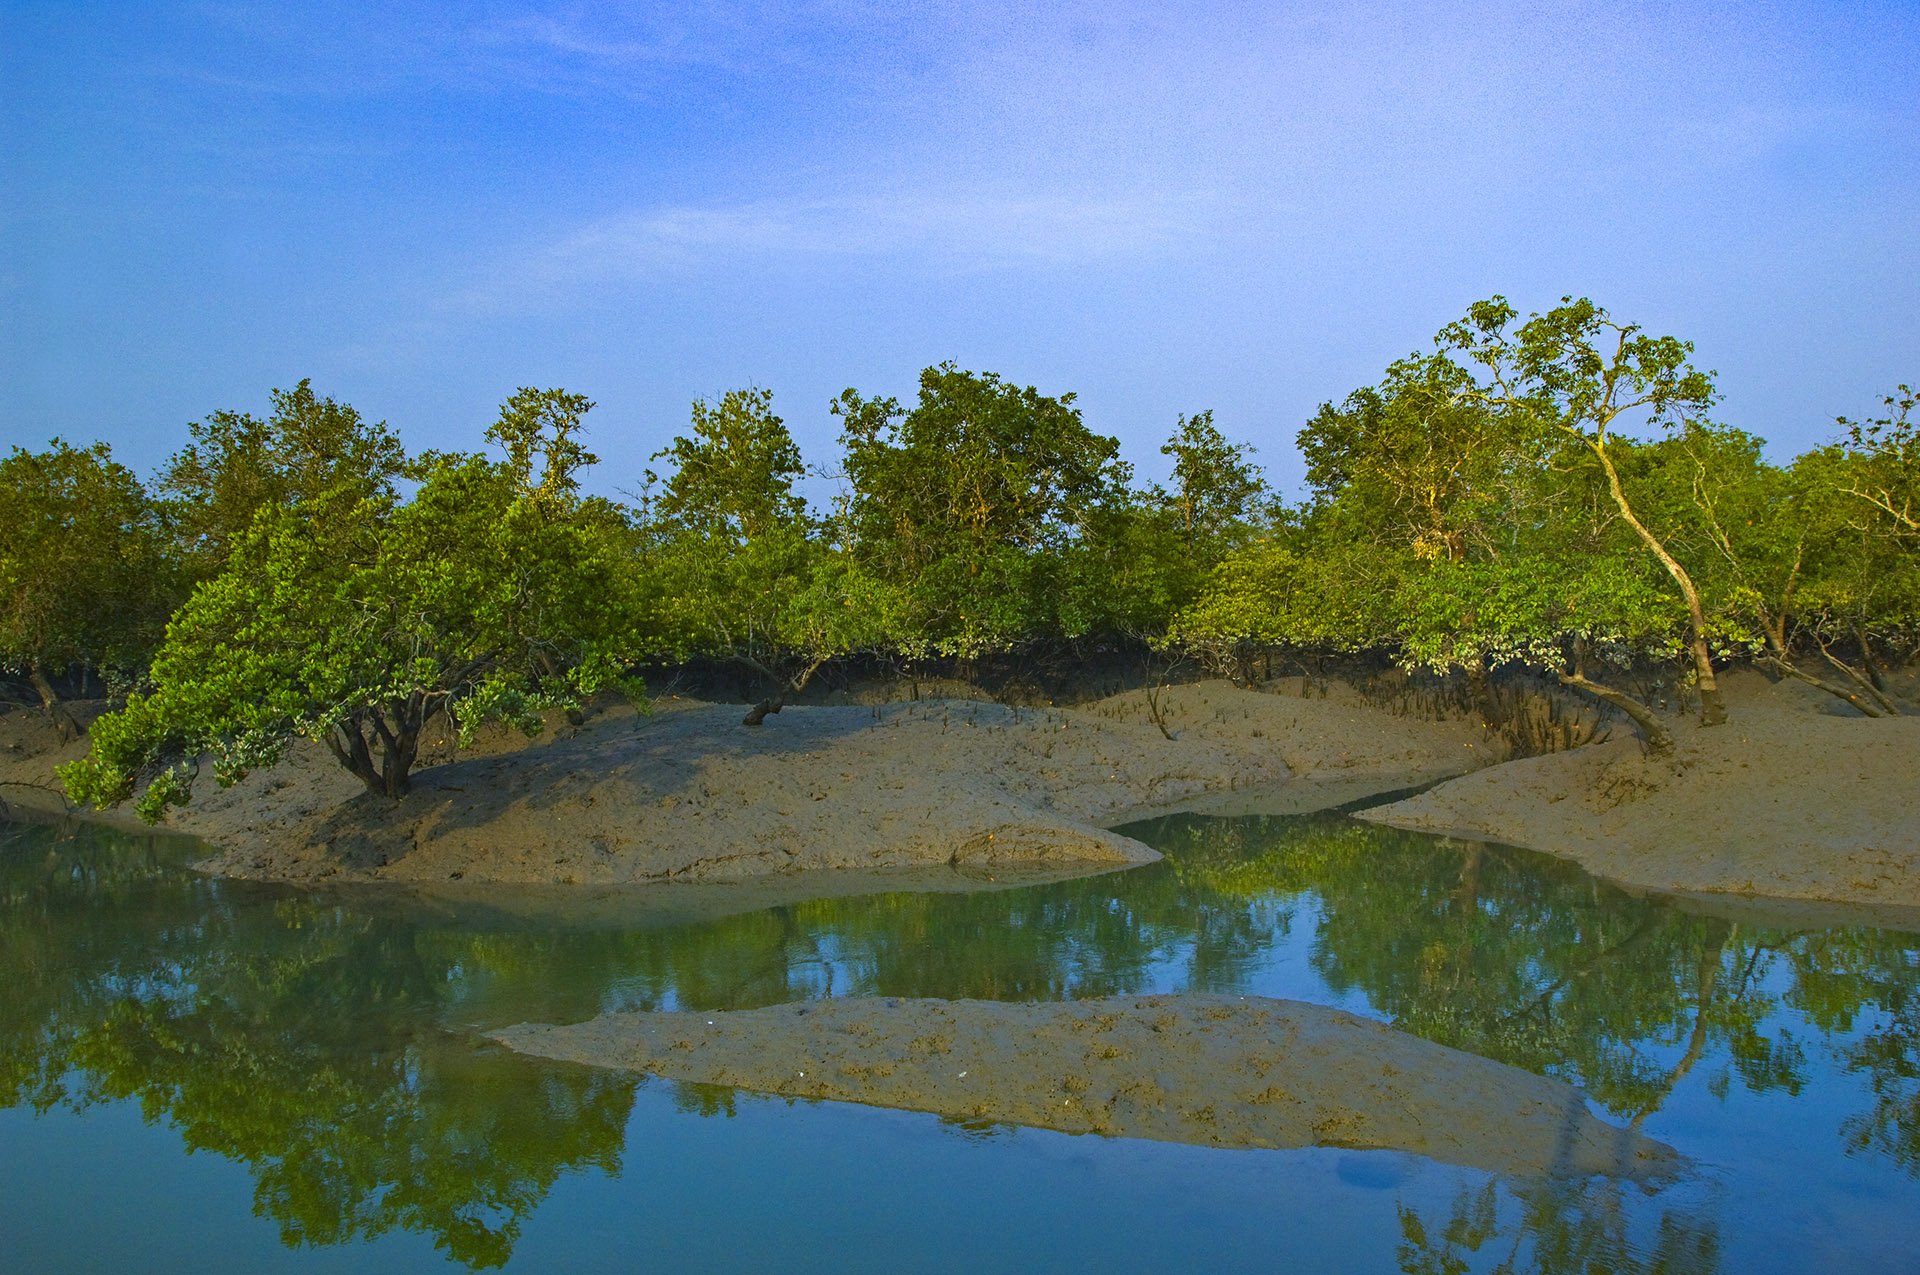 The Sundarbans is an ever-changing landscape shaped and reshaped by the incoming and outgoing tides, held together by a fortification of mangroves.  Photo: Dhritiman Mukherjee